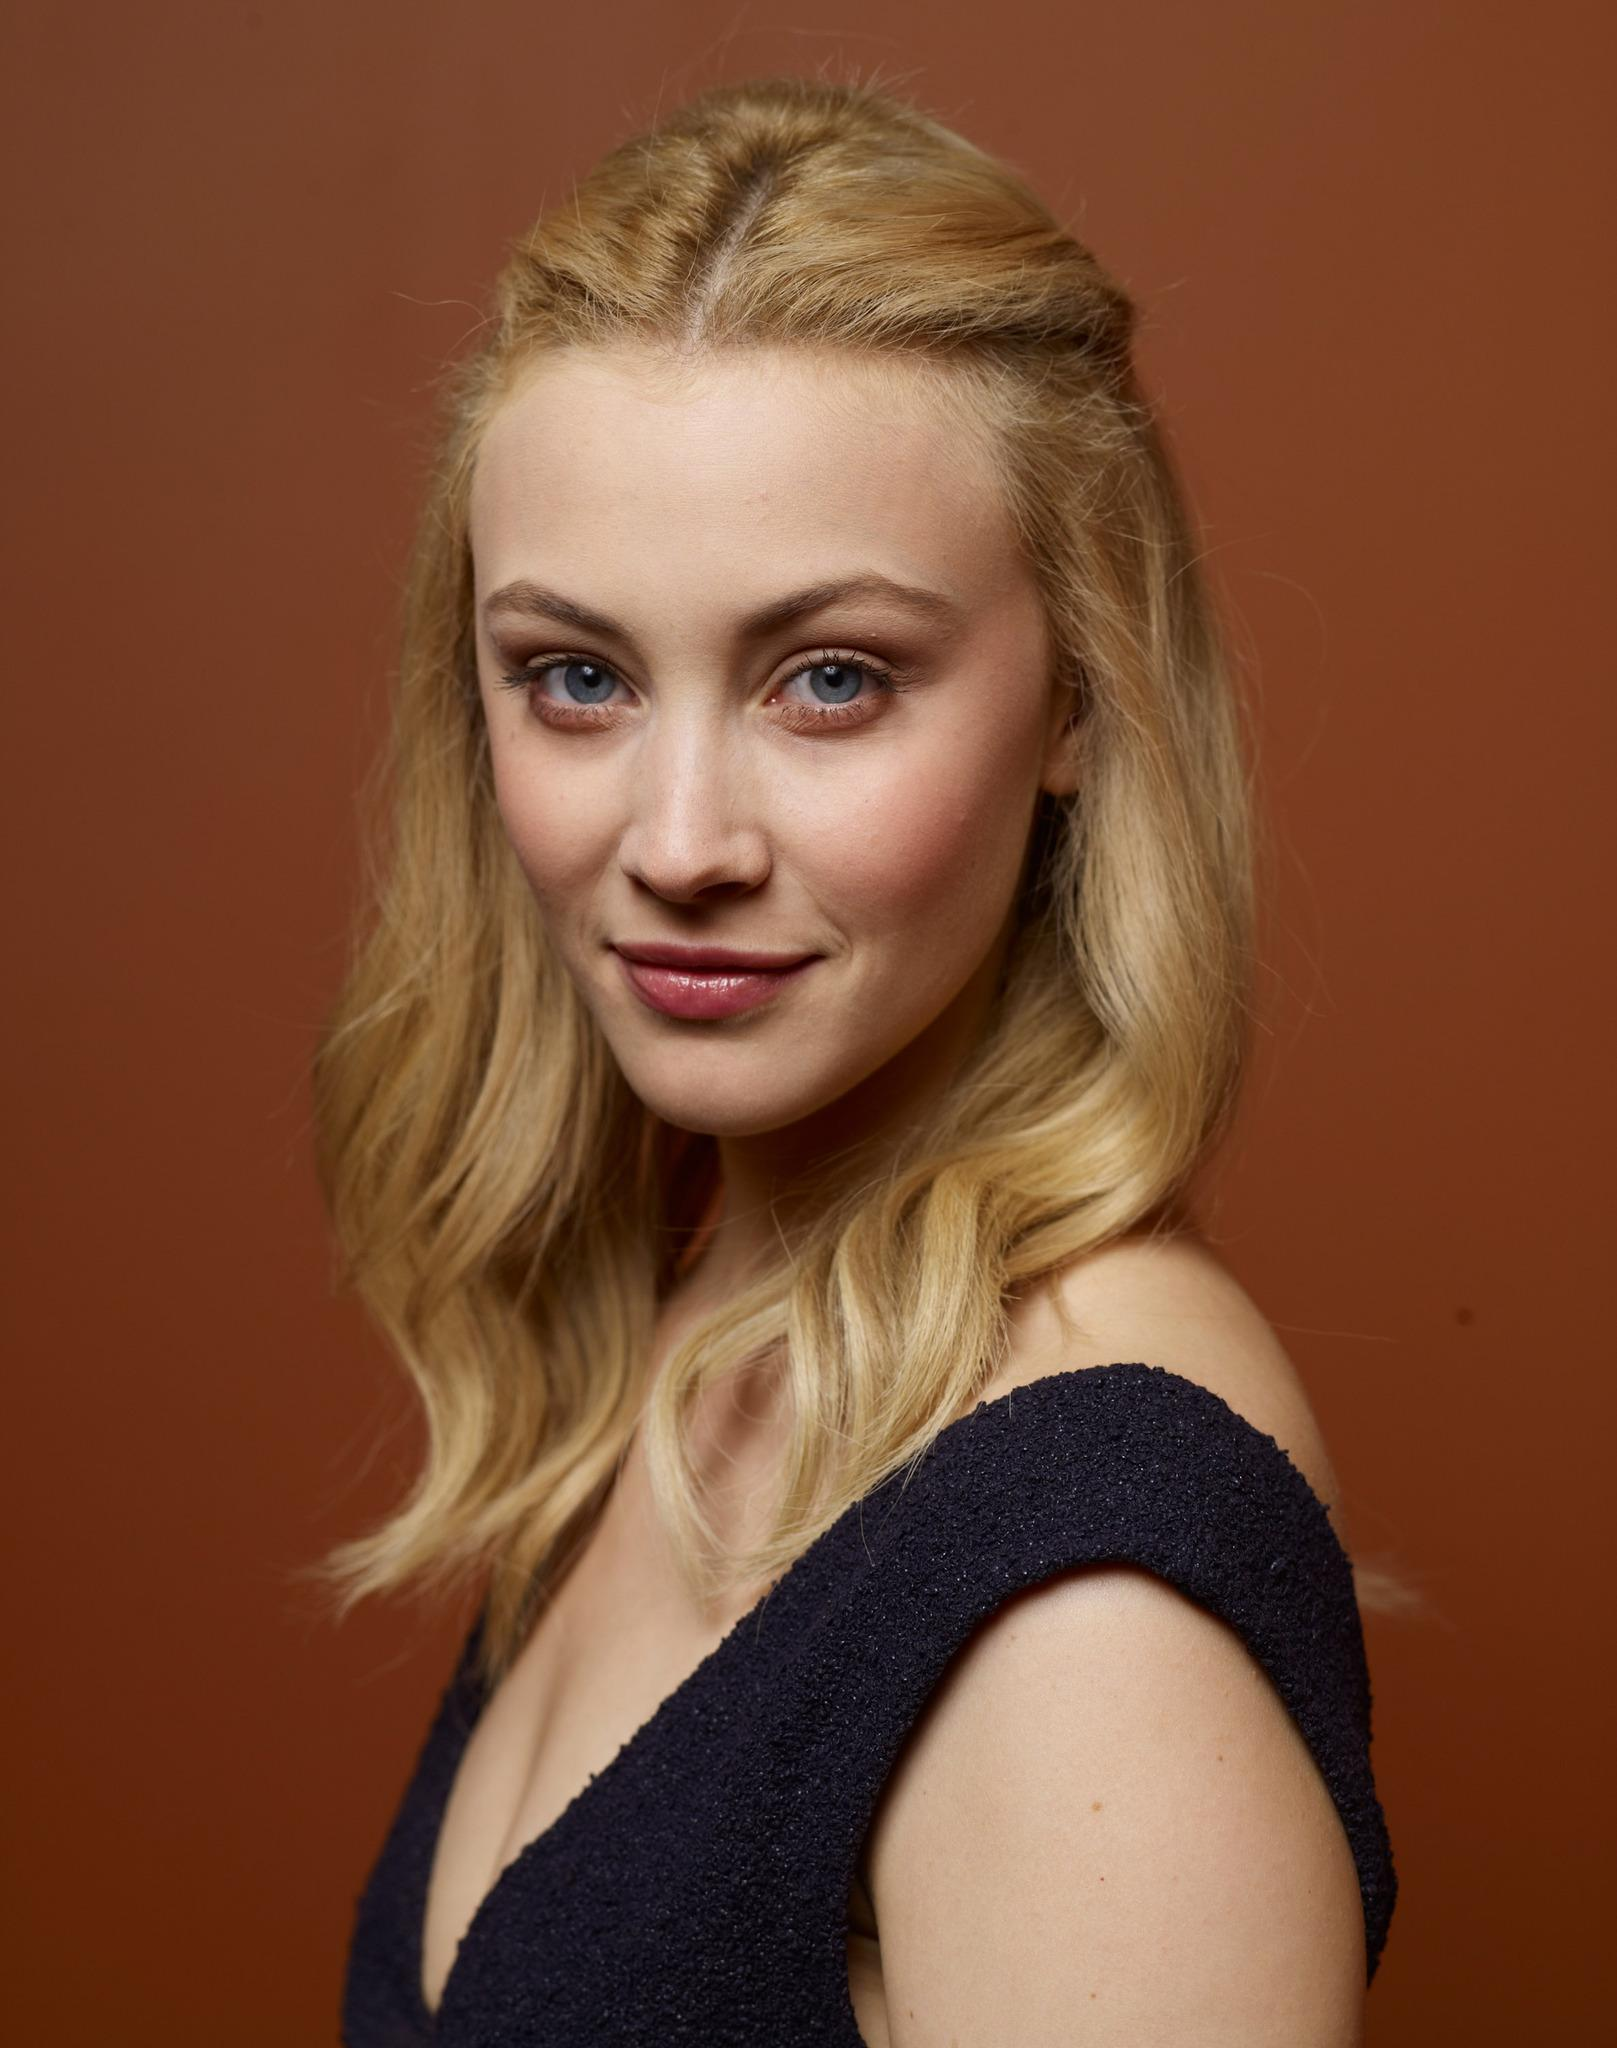 Sarah Gadon Gets Glam On Fashion Magazine Cover: Sarah Gadon Wallpapers High Resolution And Quality Download